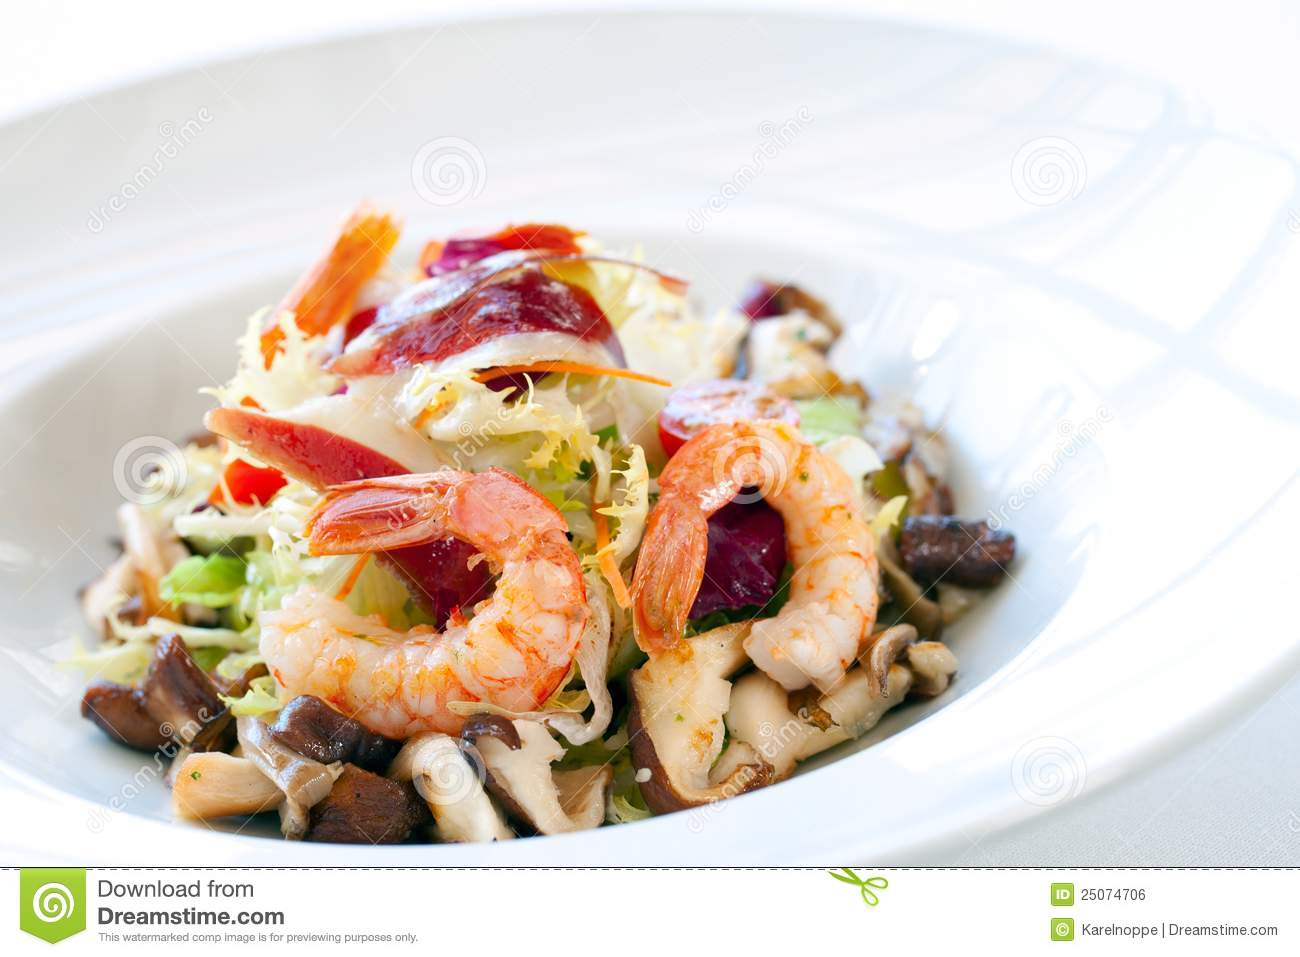 Close up shrimp salad with mushrooms and lettuce.